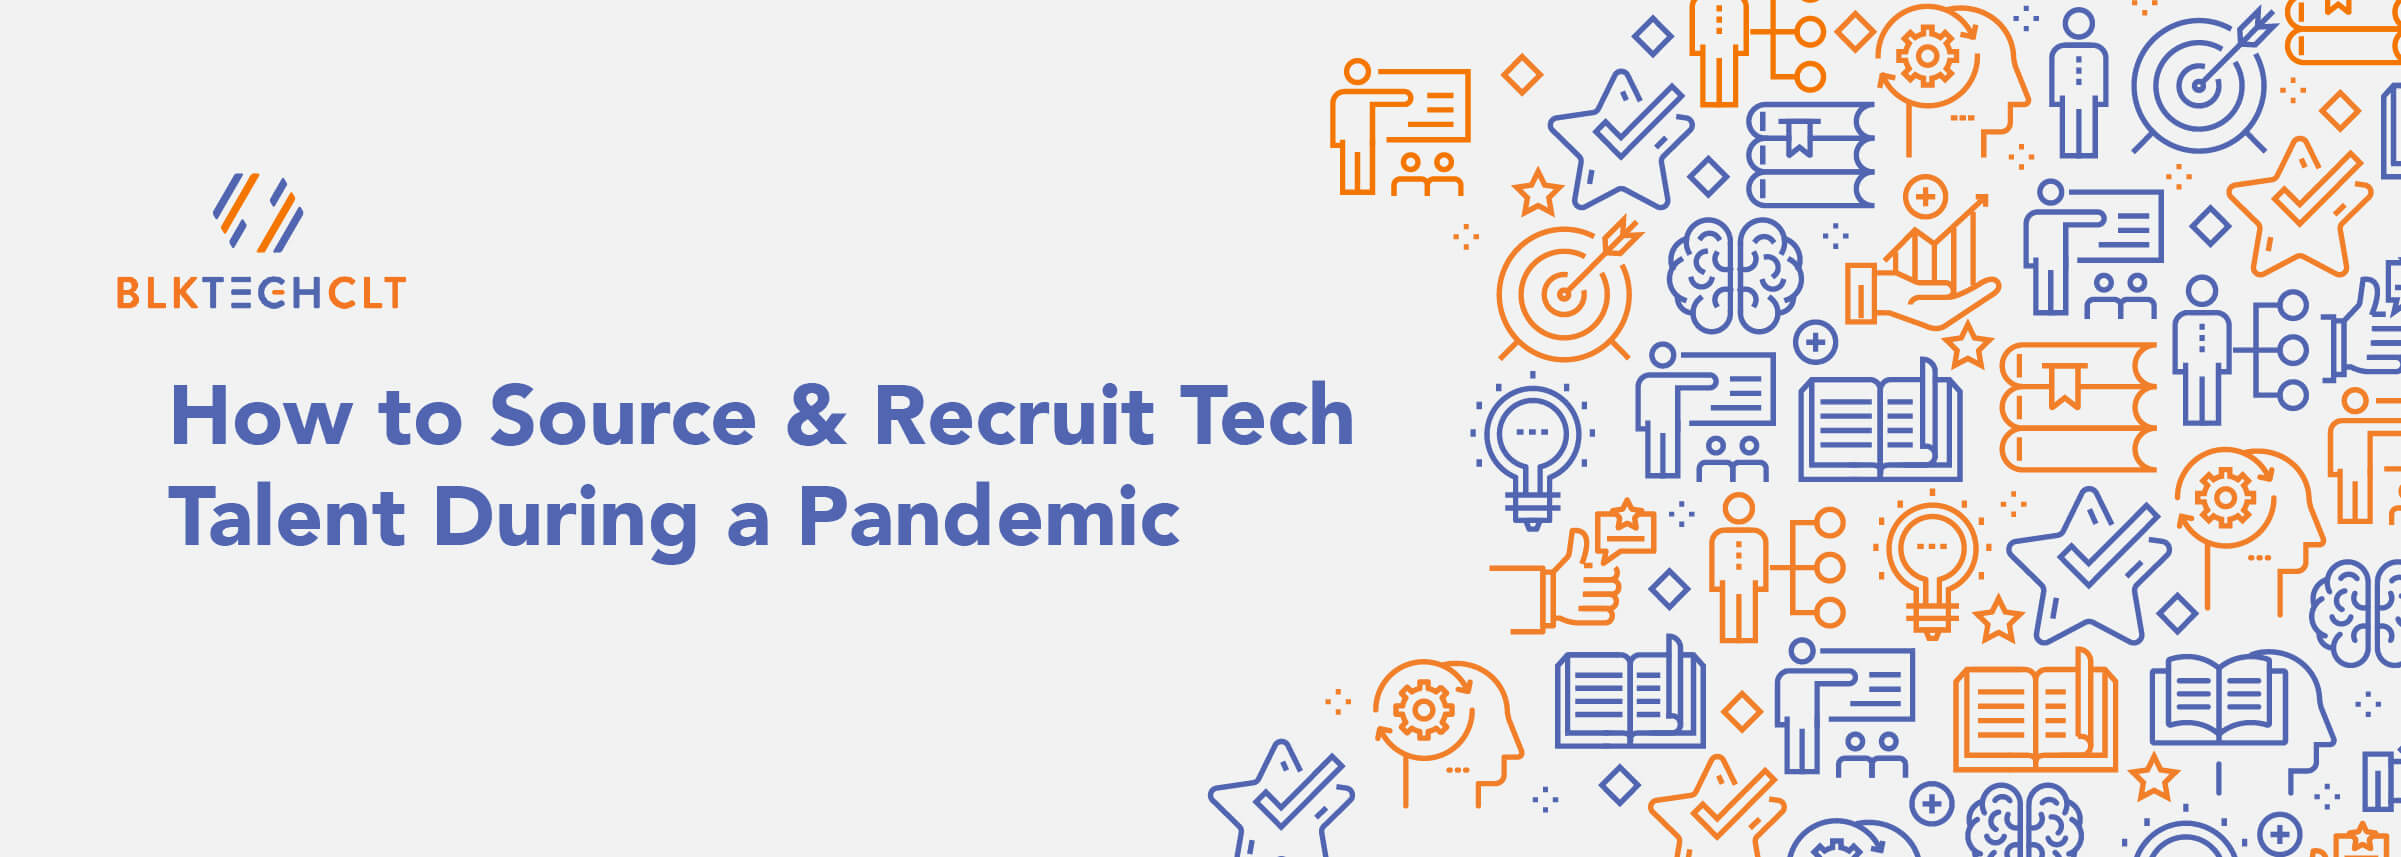 BLKTECHCLT How to Source and Recruit Tech Talent During a Pandemic banner with blue and orange business icons